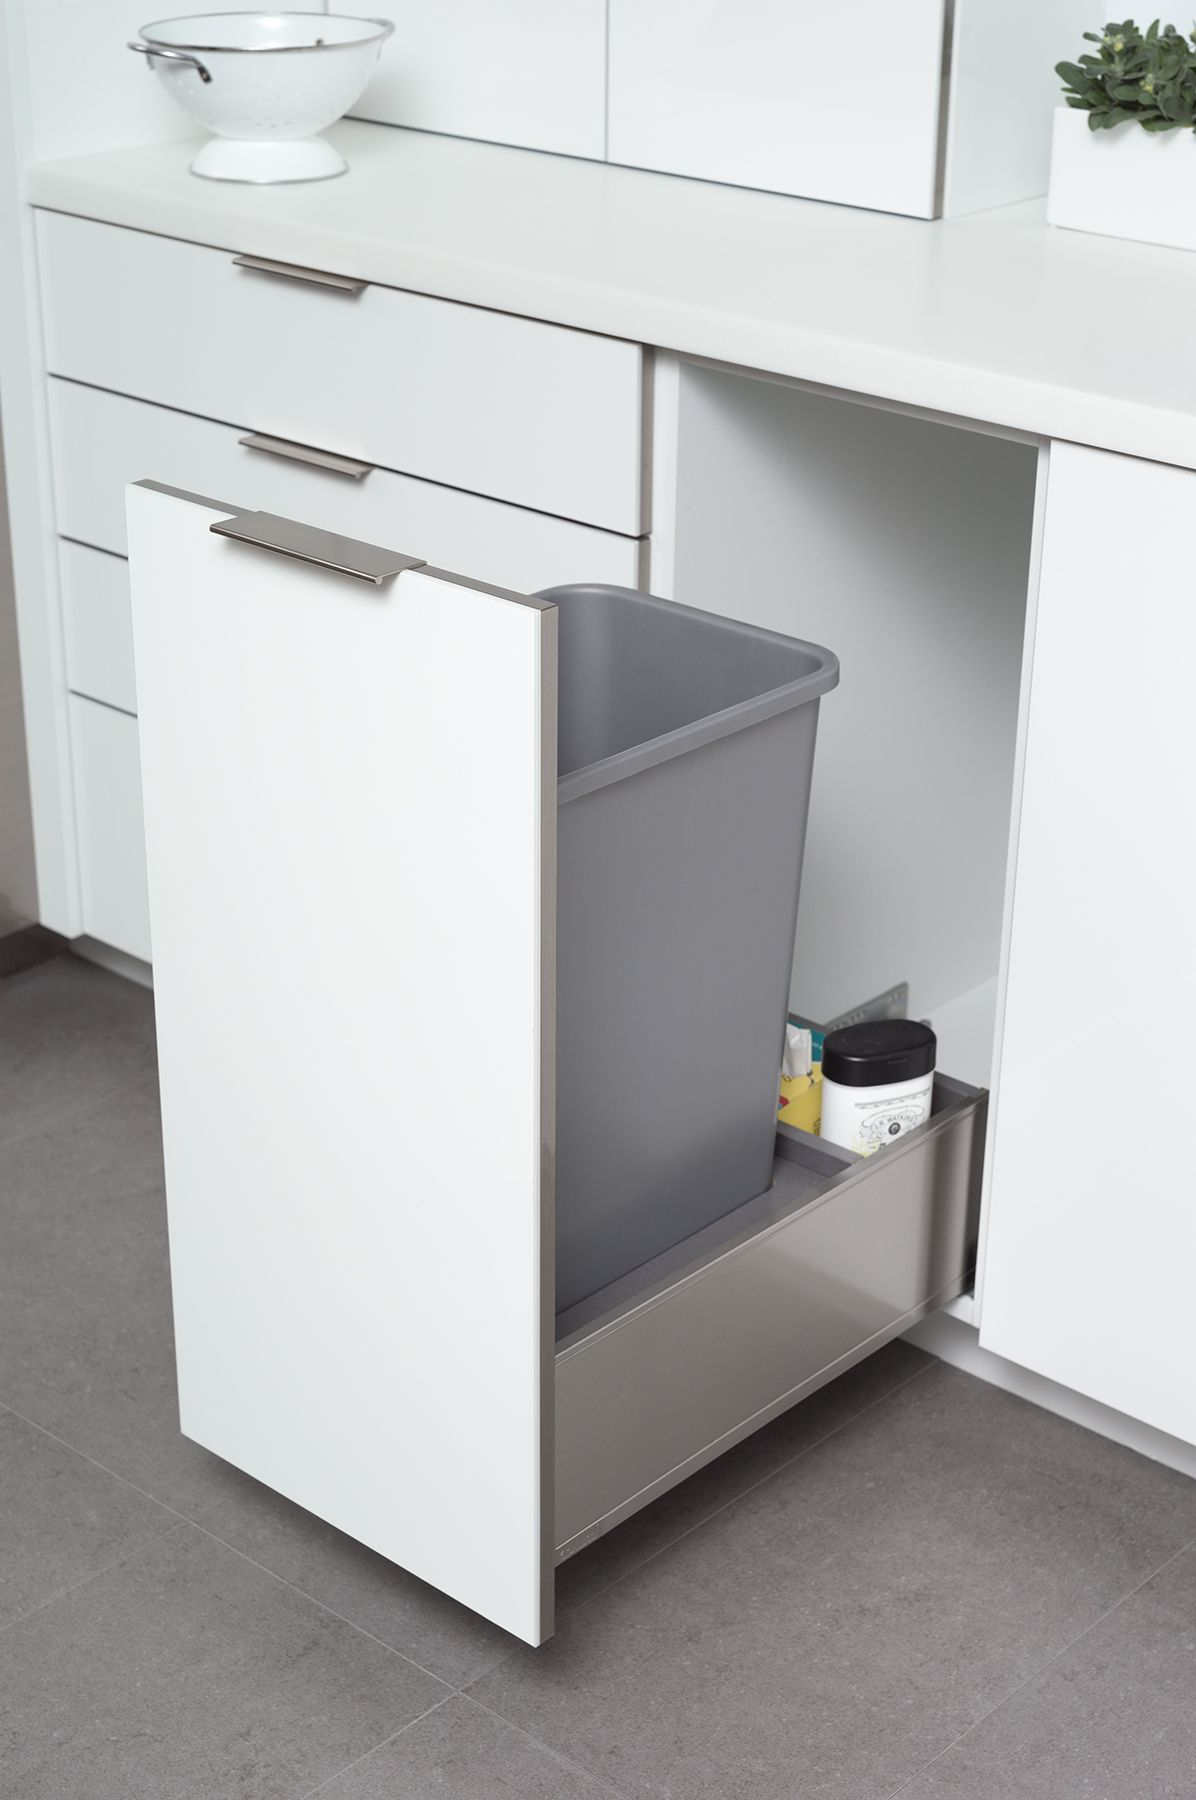 Sink Tray Under Sink Storage Dura Supreme Cabinetry Modern Kitchen Trash Cans Cabinetry Trash Can Cabinet